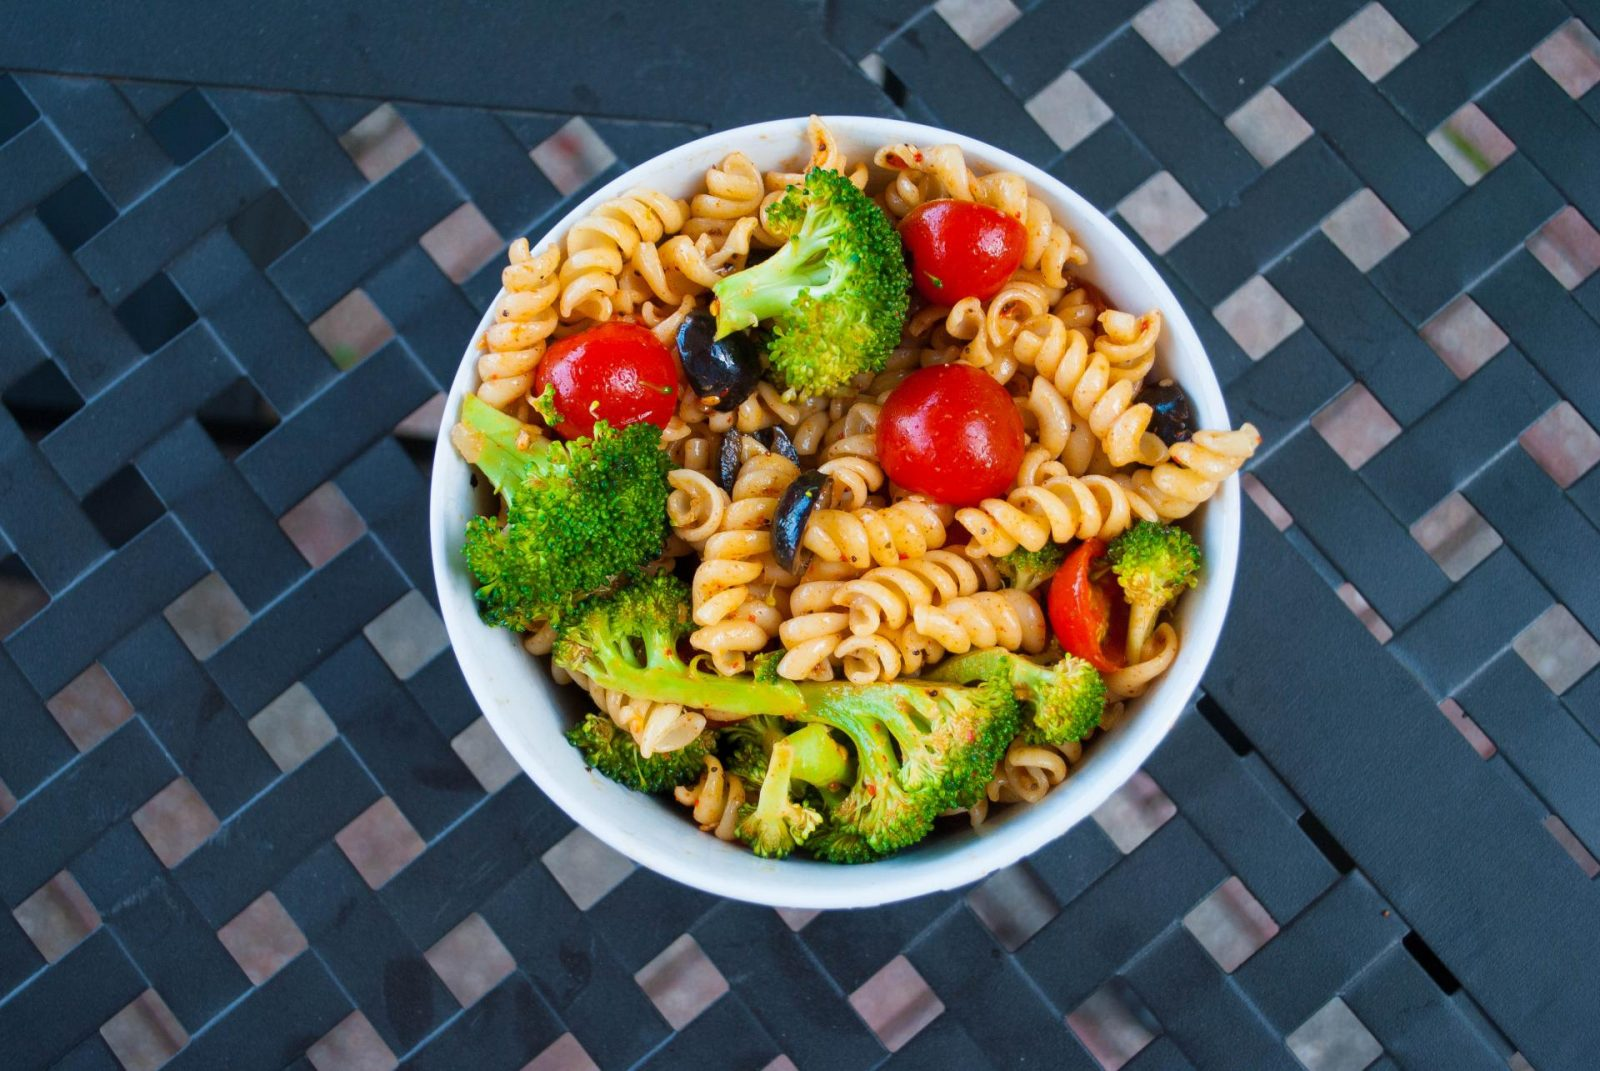 My Family's Magnificent Make-Ahead Pasta Salad Recipe!